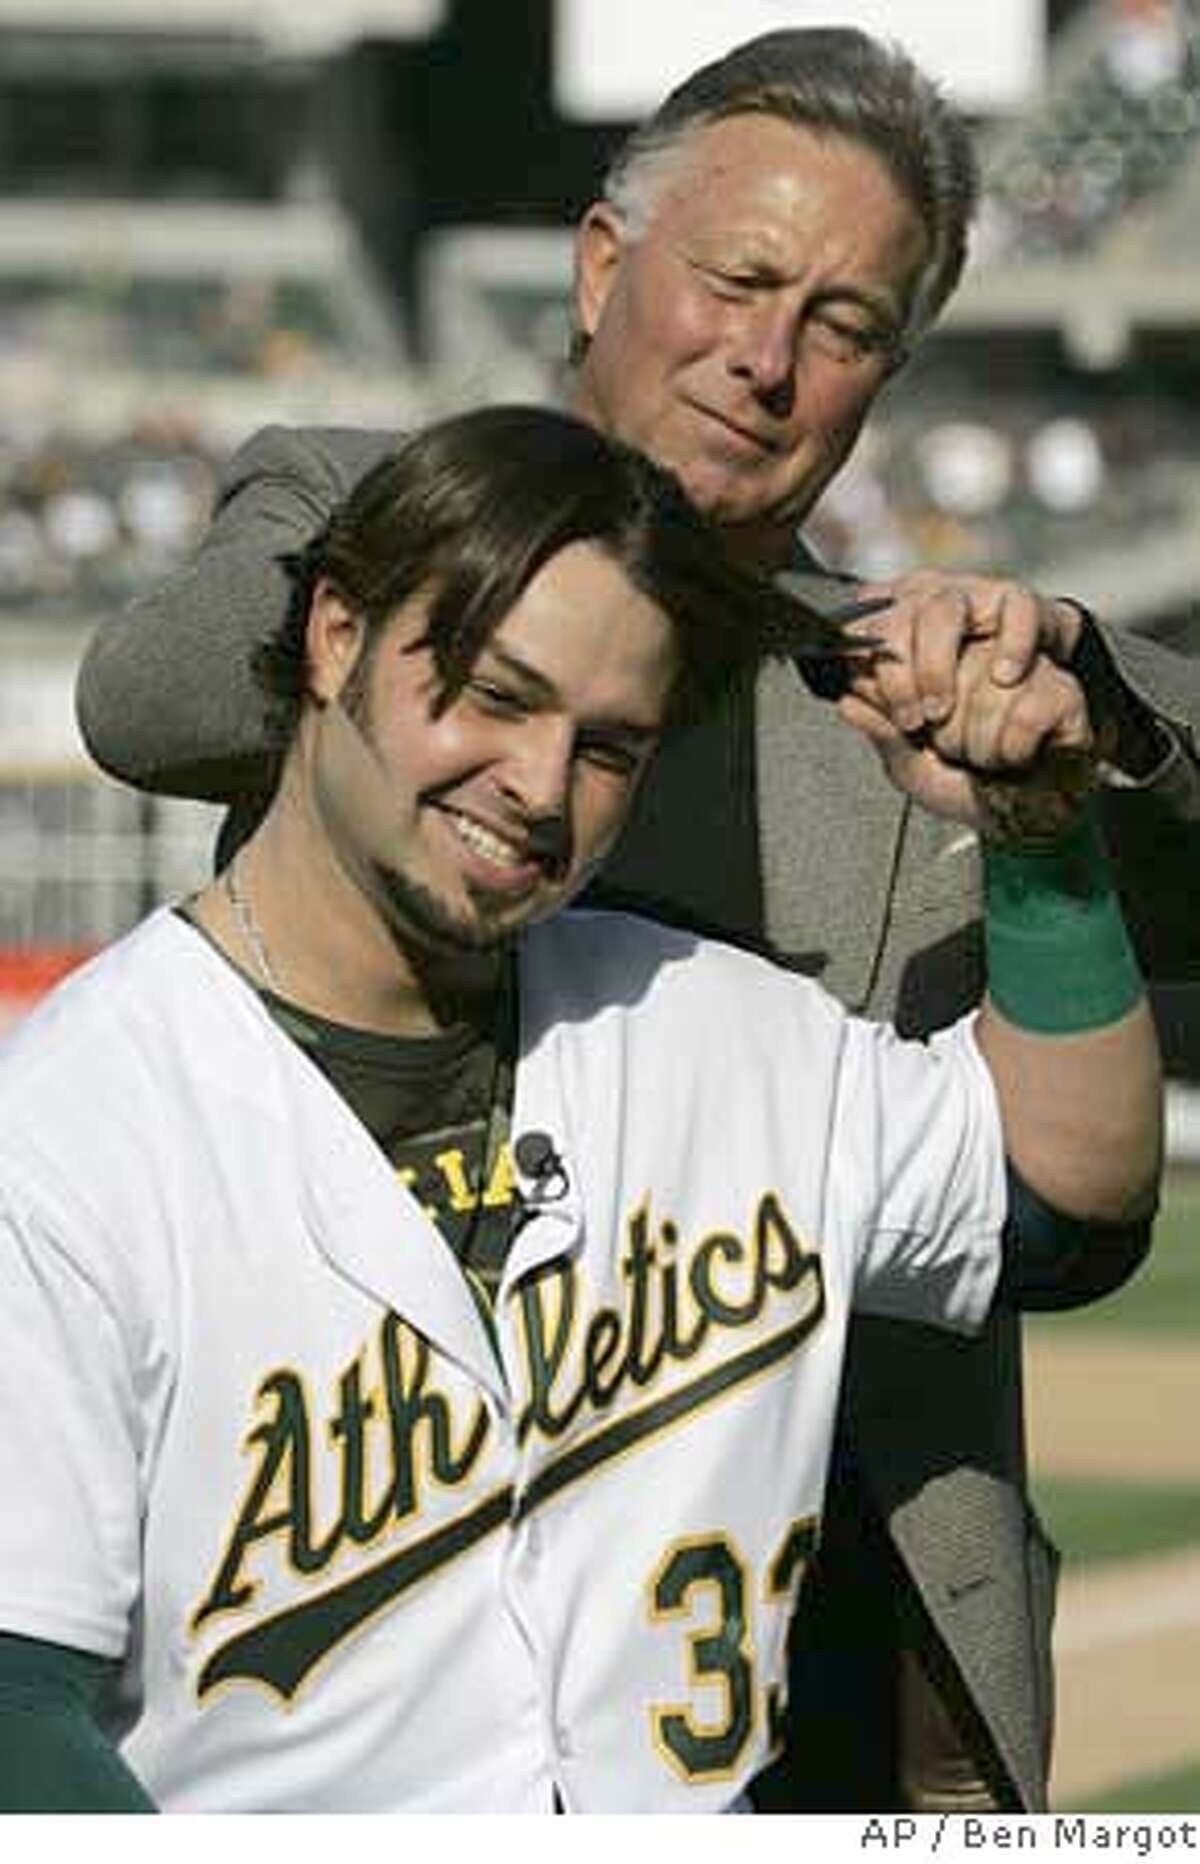 Oakland Athletics center fielder Nick Swisher, bottom, has his ponytail cut by his father, former major league baseball player Steve Swisher, prior to the baseball game with the San Francisco Giants, Saturday, May 19, 2007, in Oakland, Calif. Swisher had not cut his hair since the beginning of spring training, with the intention of donating his locks for a wig to be made for a woman with cancer, in honor of his grandmother who died of the illness. (AP Photo/Ben Margot)